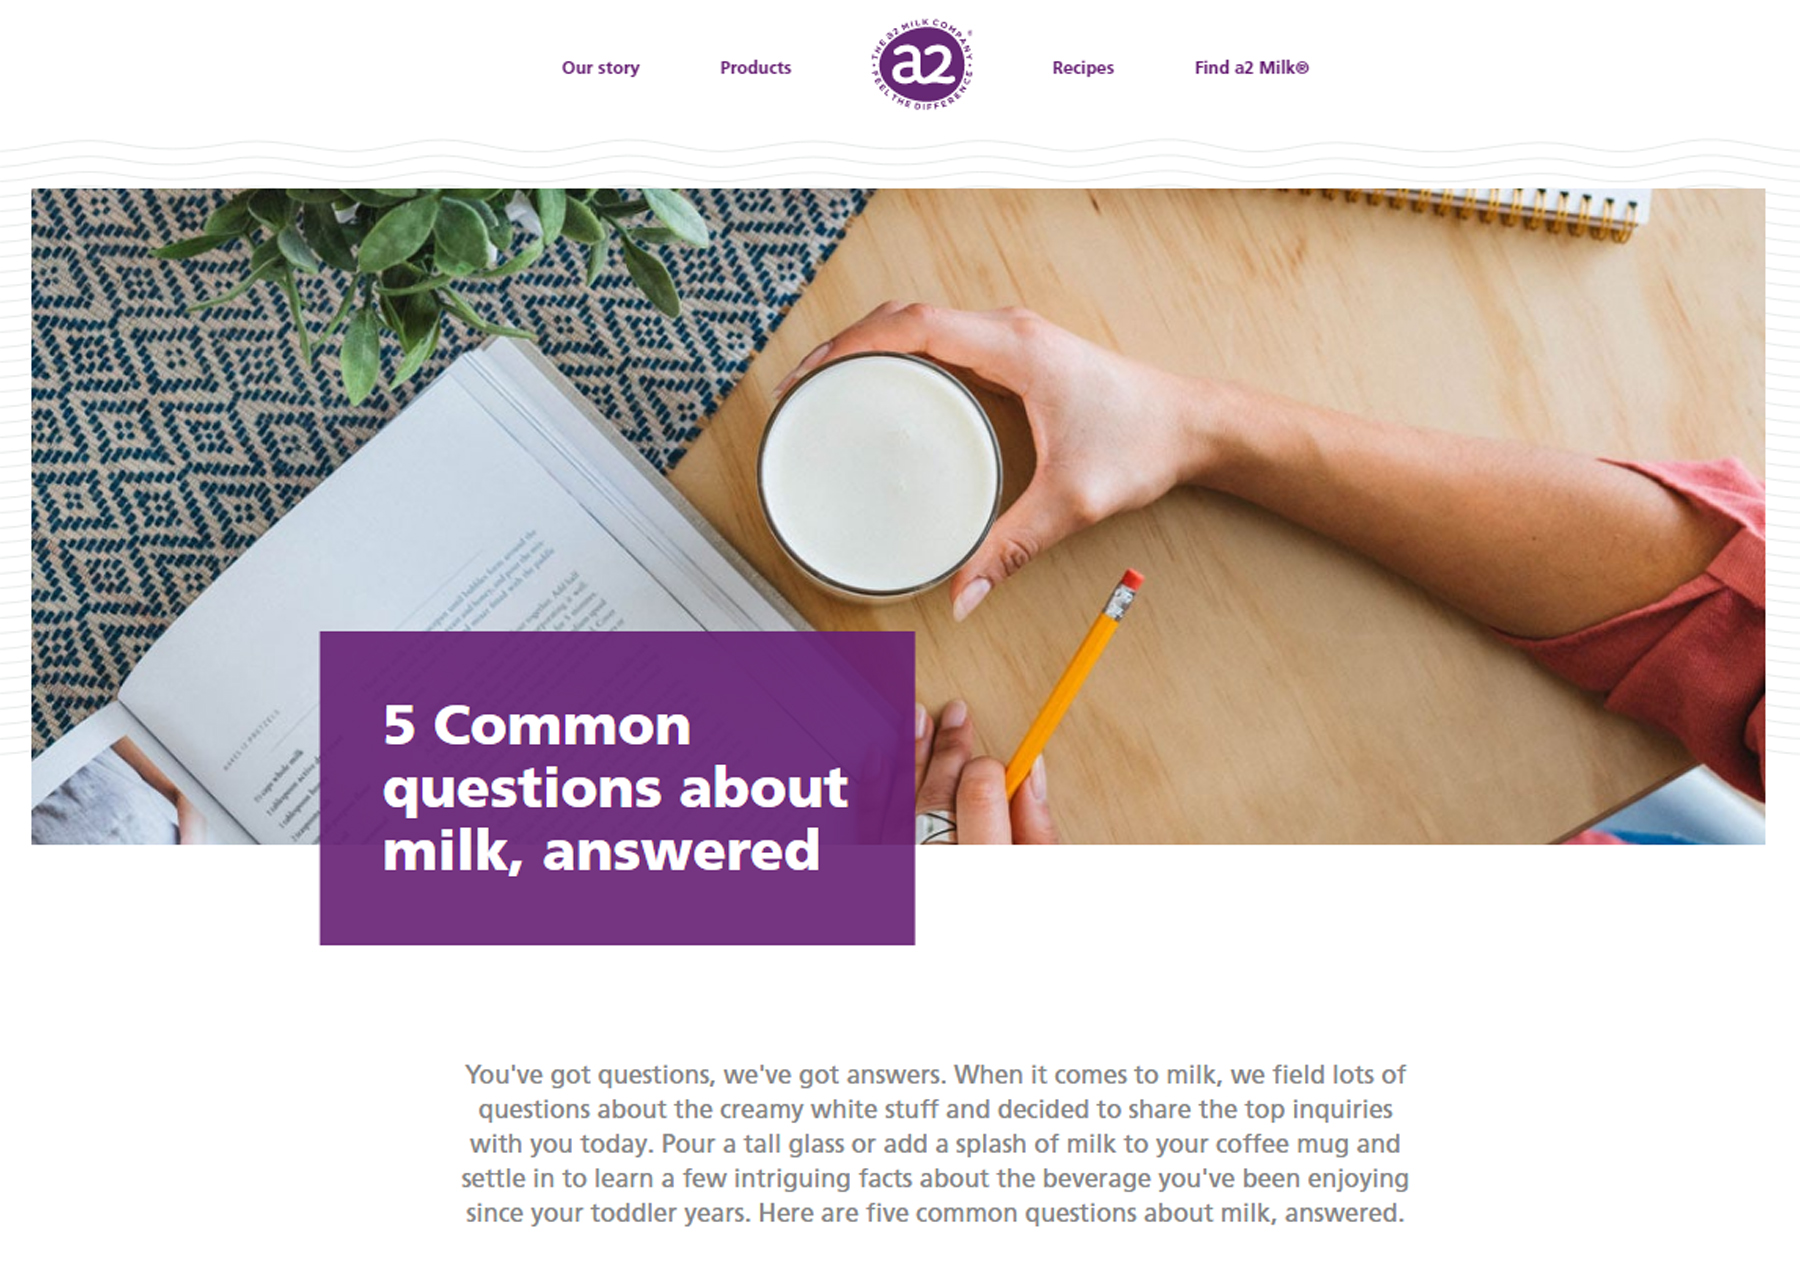 Standard form evergreen content example: 5 Common questions about milk, answered